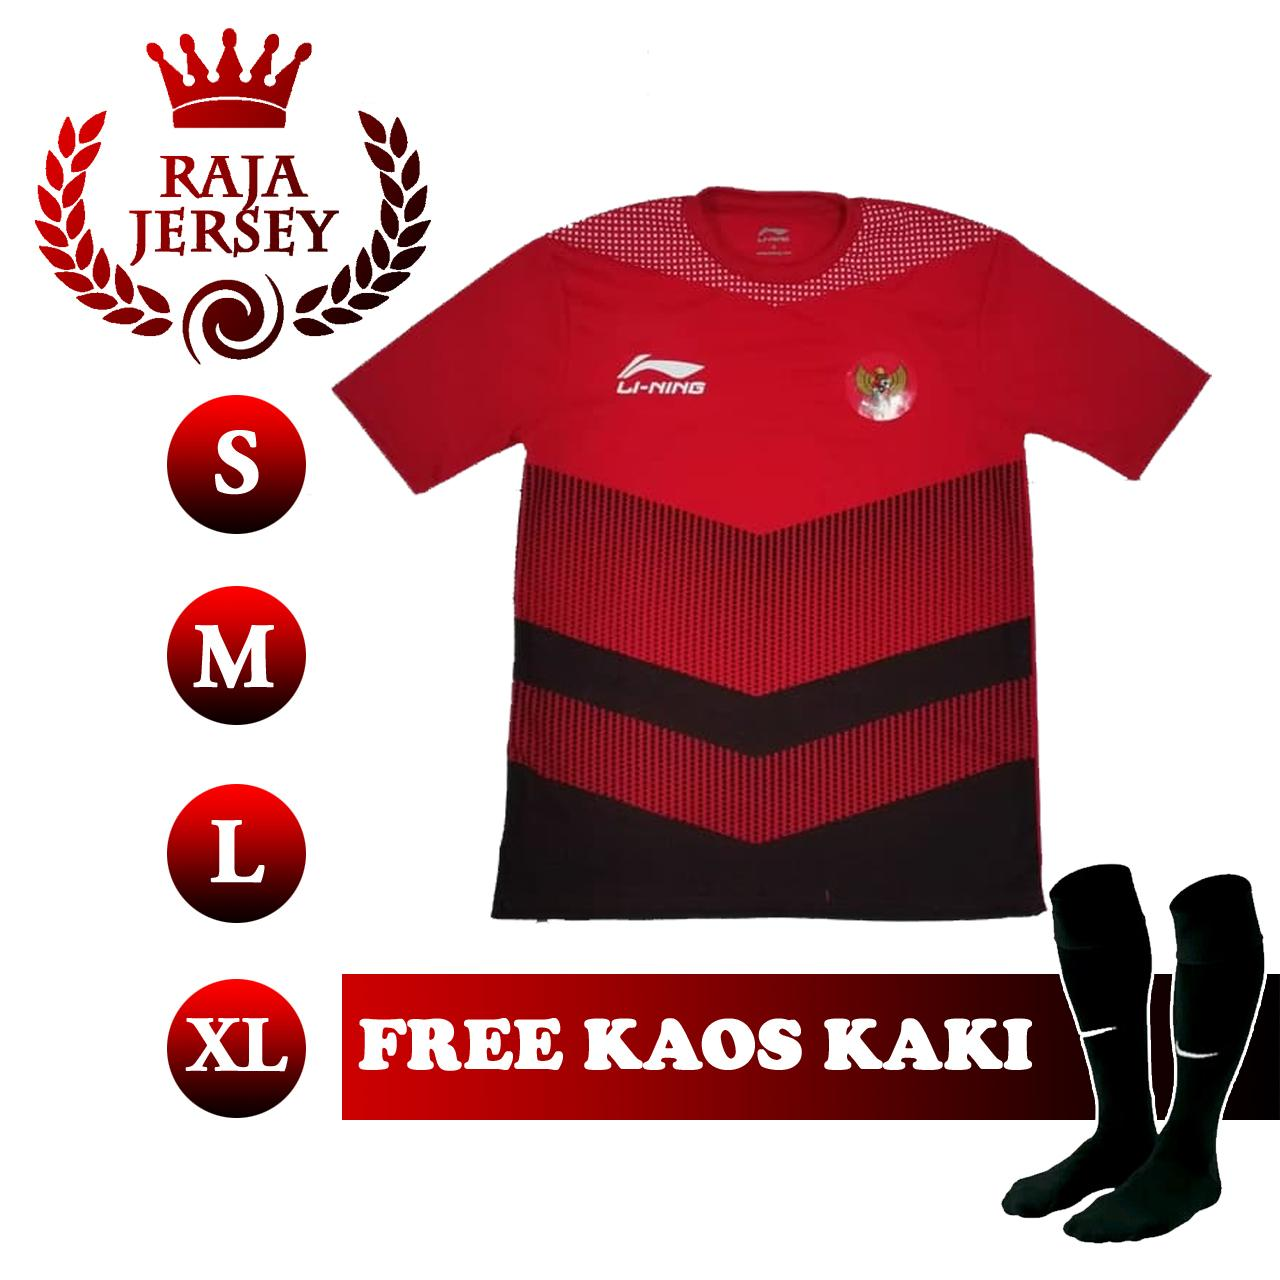 Kaos Kaki Badminton Lining Buy Sell Cheapest Best Quality Product Deals Jersey Timnas Indonesia Home Official Asian Games Sea 2018 Go